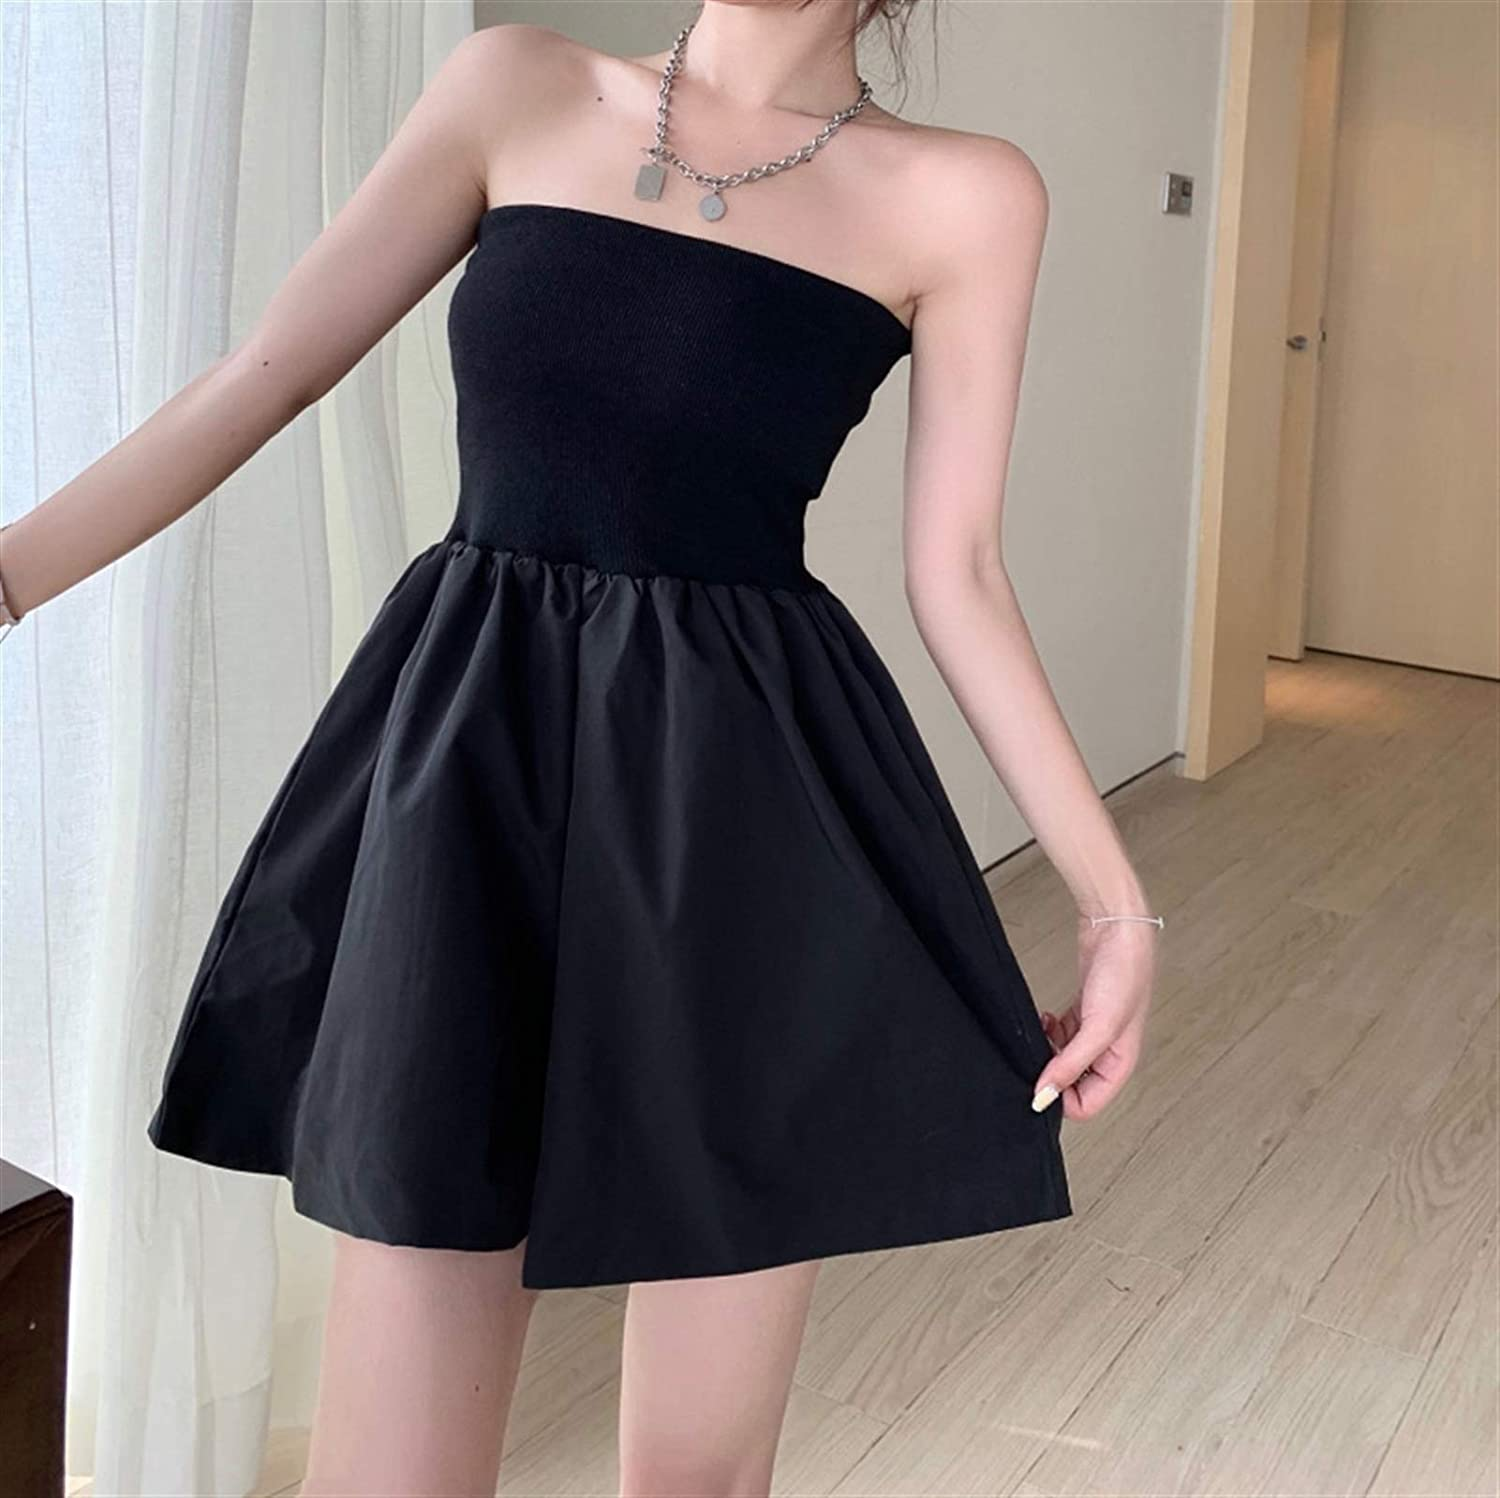 BangHaa Summer Fashion Fashion Waist Slimming Korean Version of The New Ladies Style Tube Top One-Piece Pants Skirt 2021 Dress Small Black Dress Women's Clothing for Beach Vacation